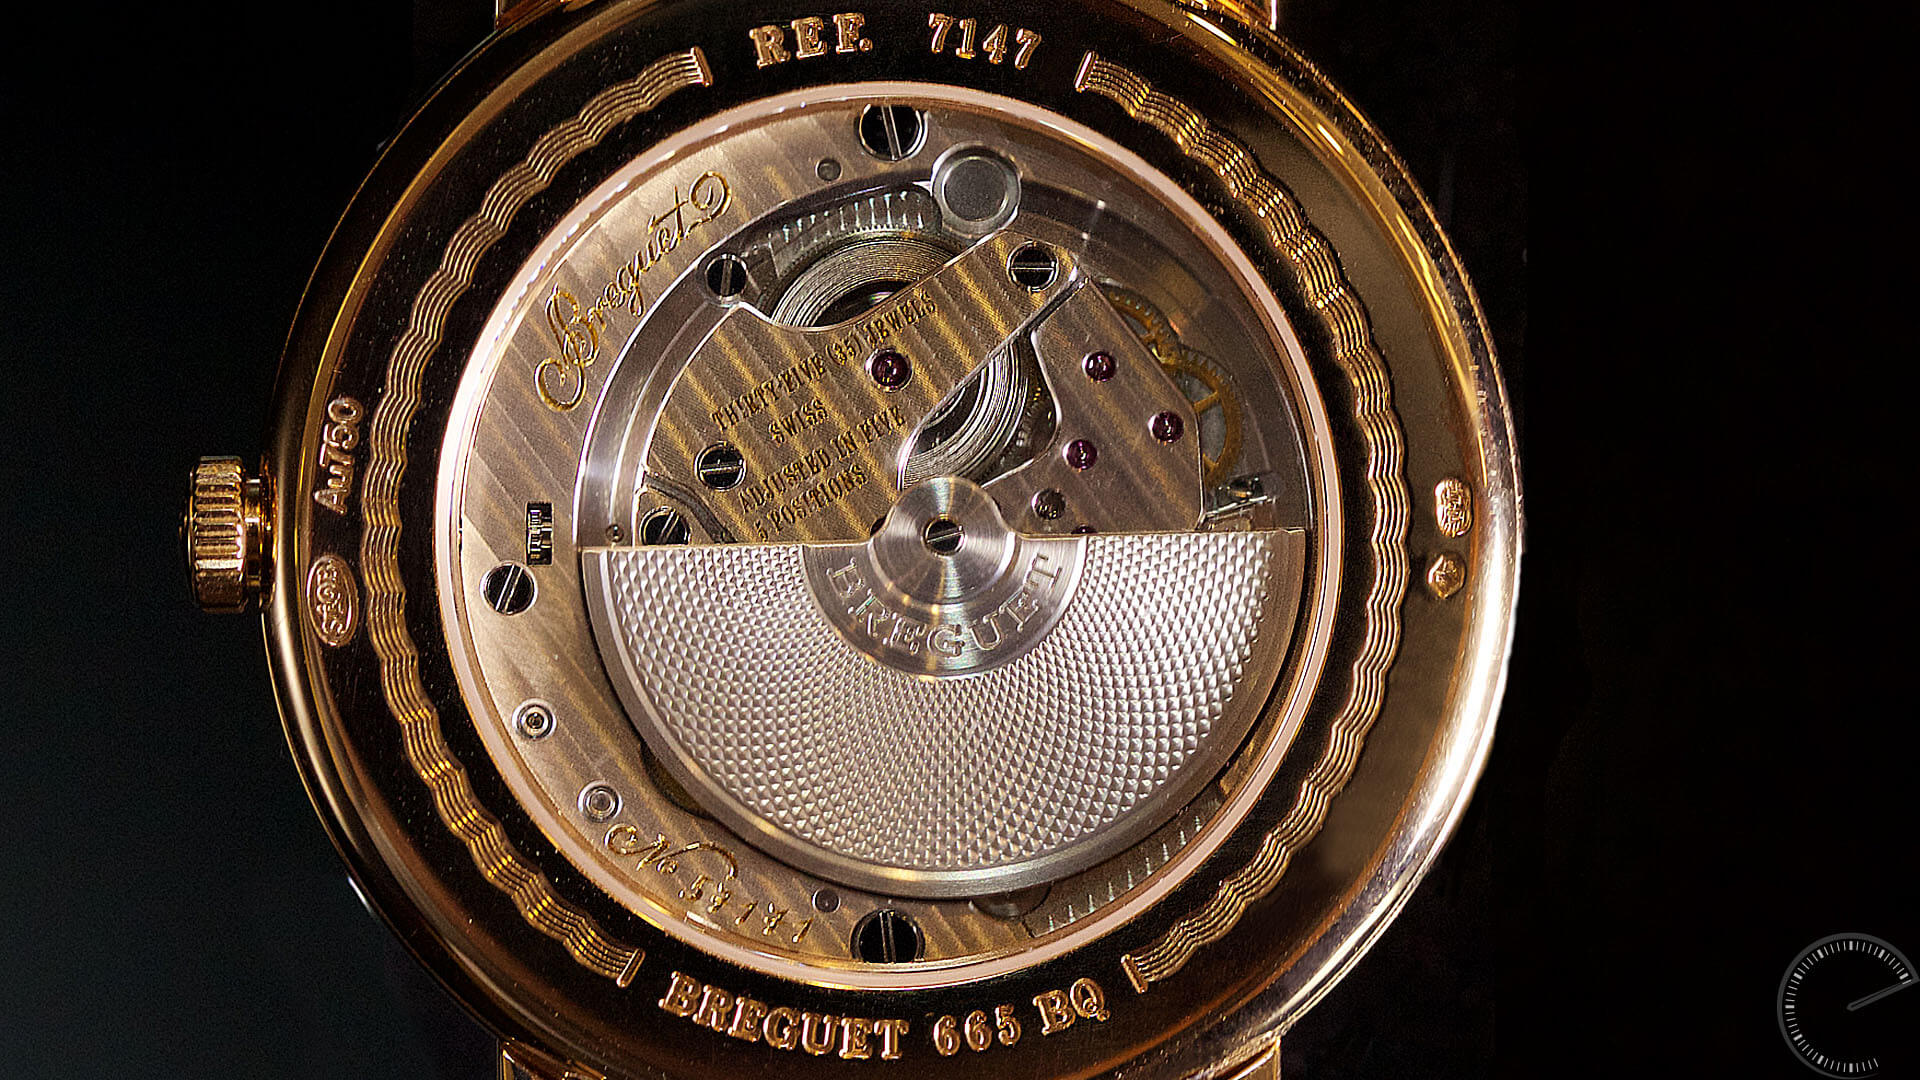 Image for watch review of Breguet Classique 7147 - Baselworld 2016 novelty